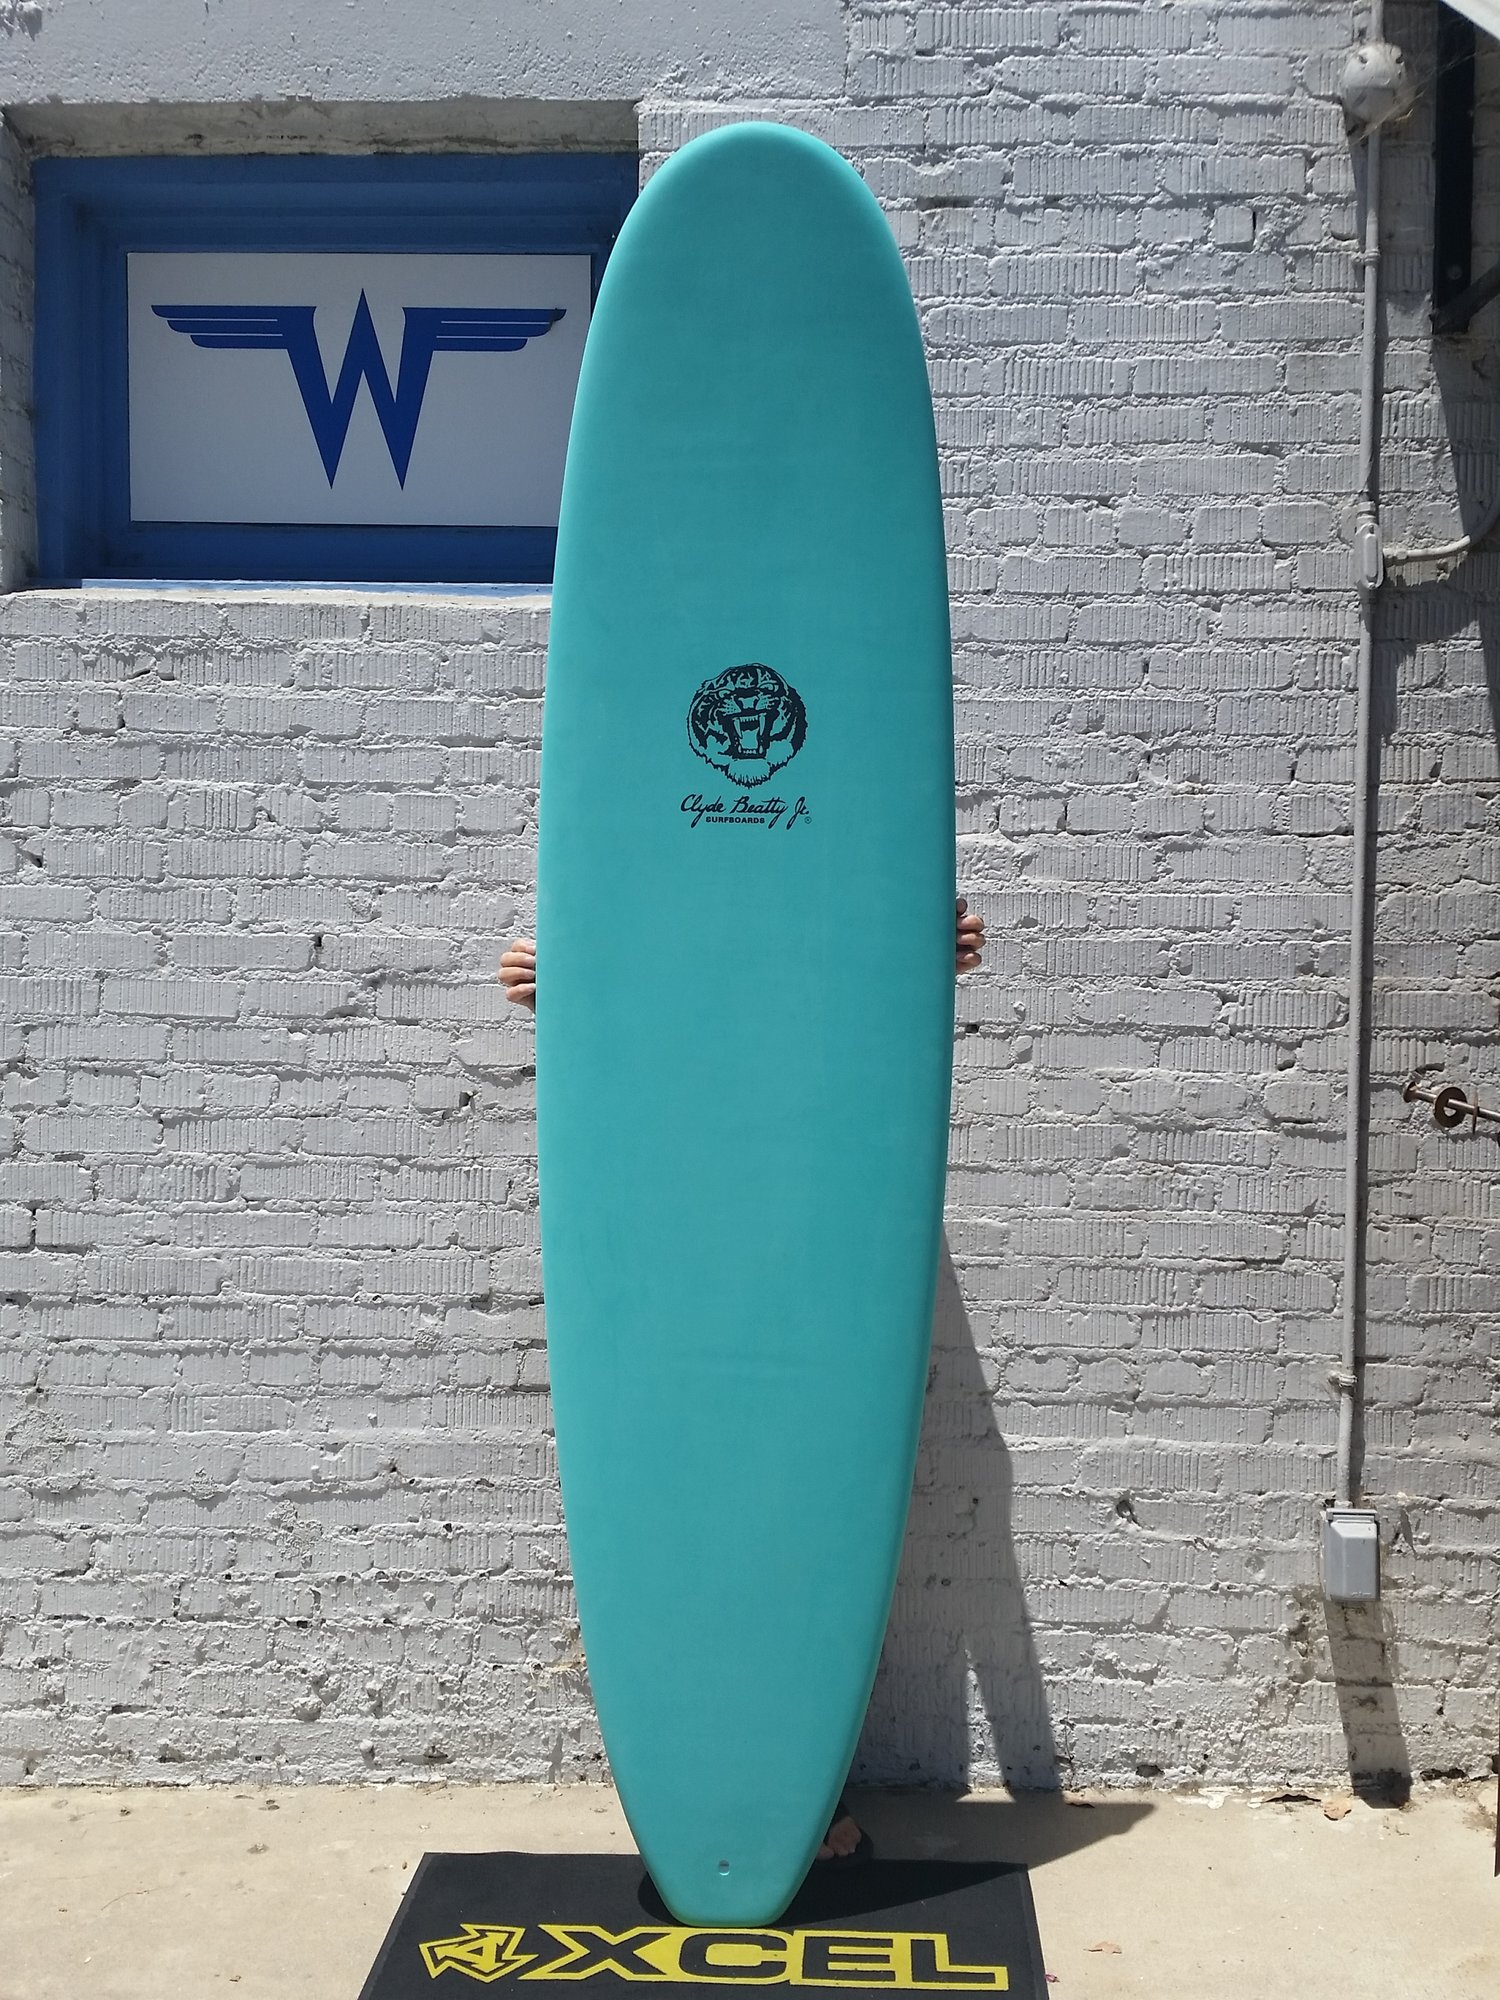 293453ddc5 Clyde Beatty Surfboards - 8'0